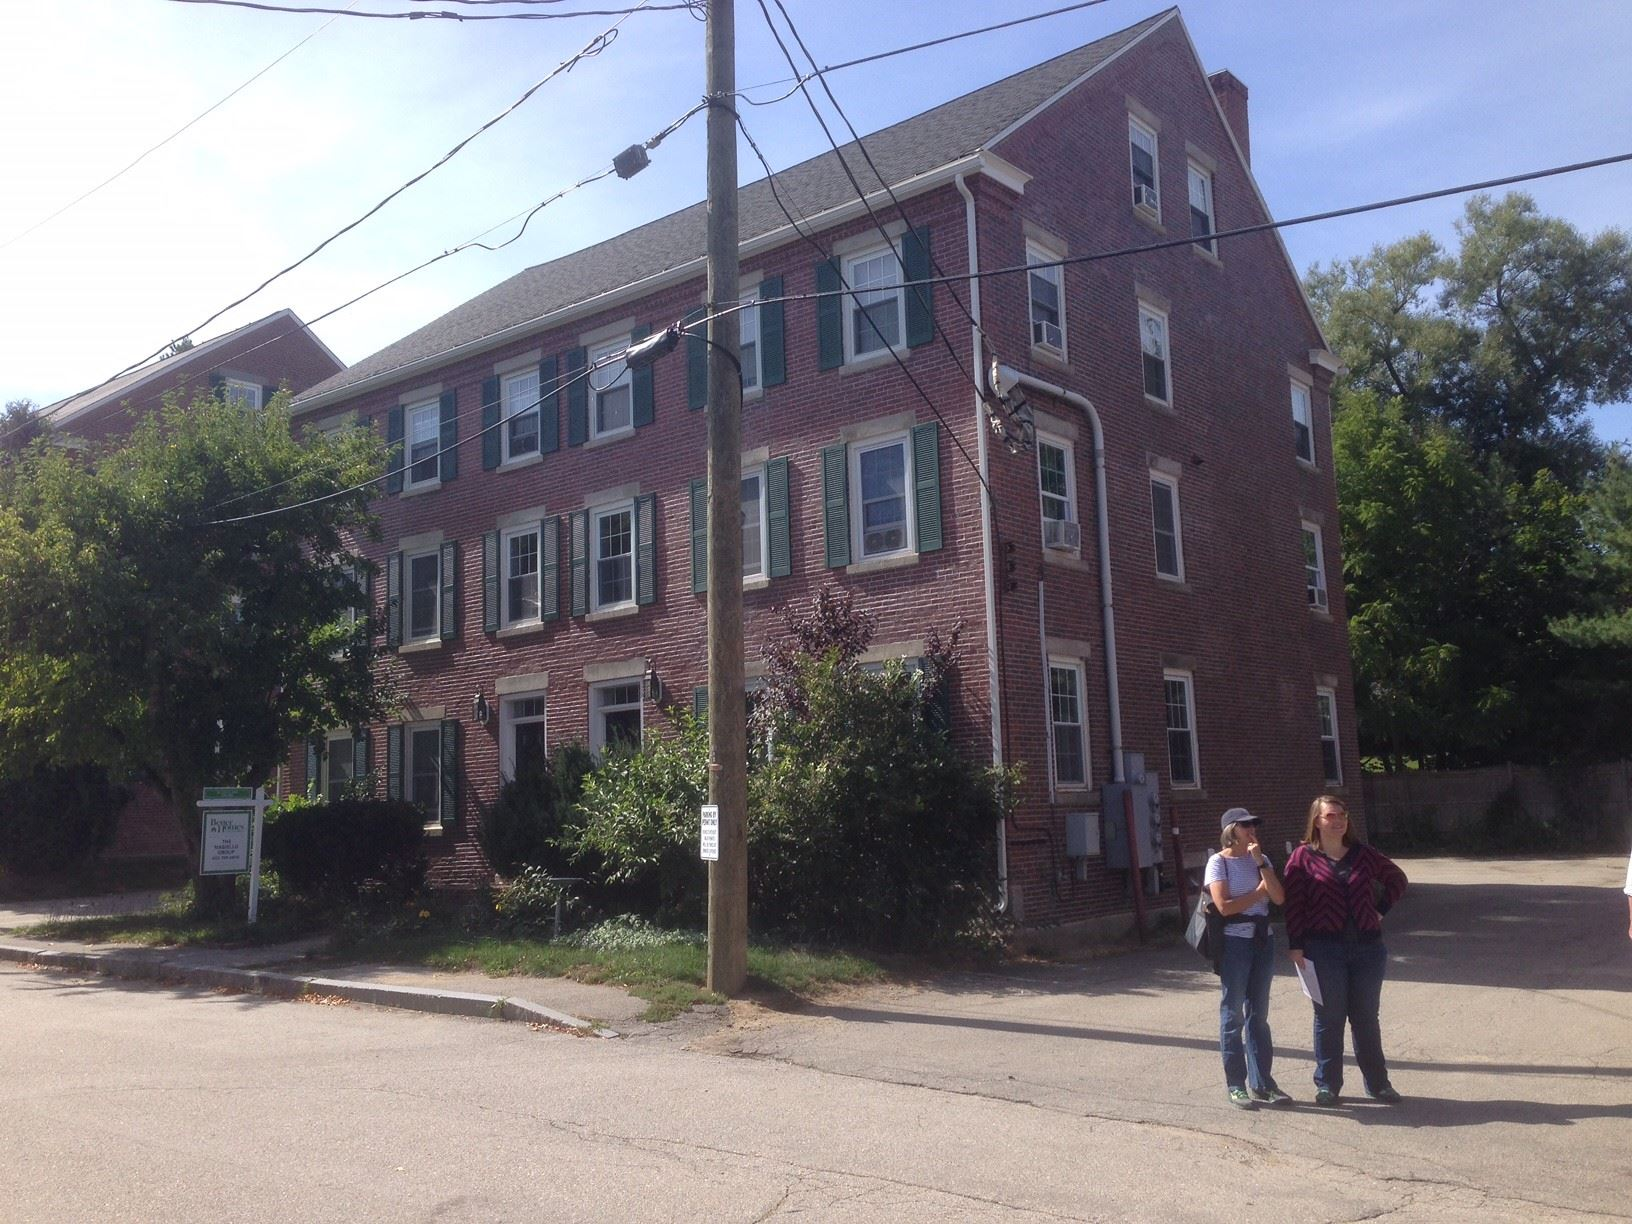 Members of the New England Chapter of the VAF examine worker housing in a textile mill village.